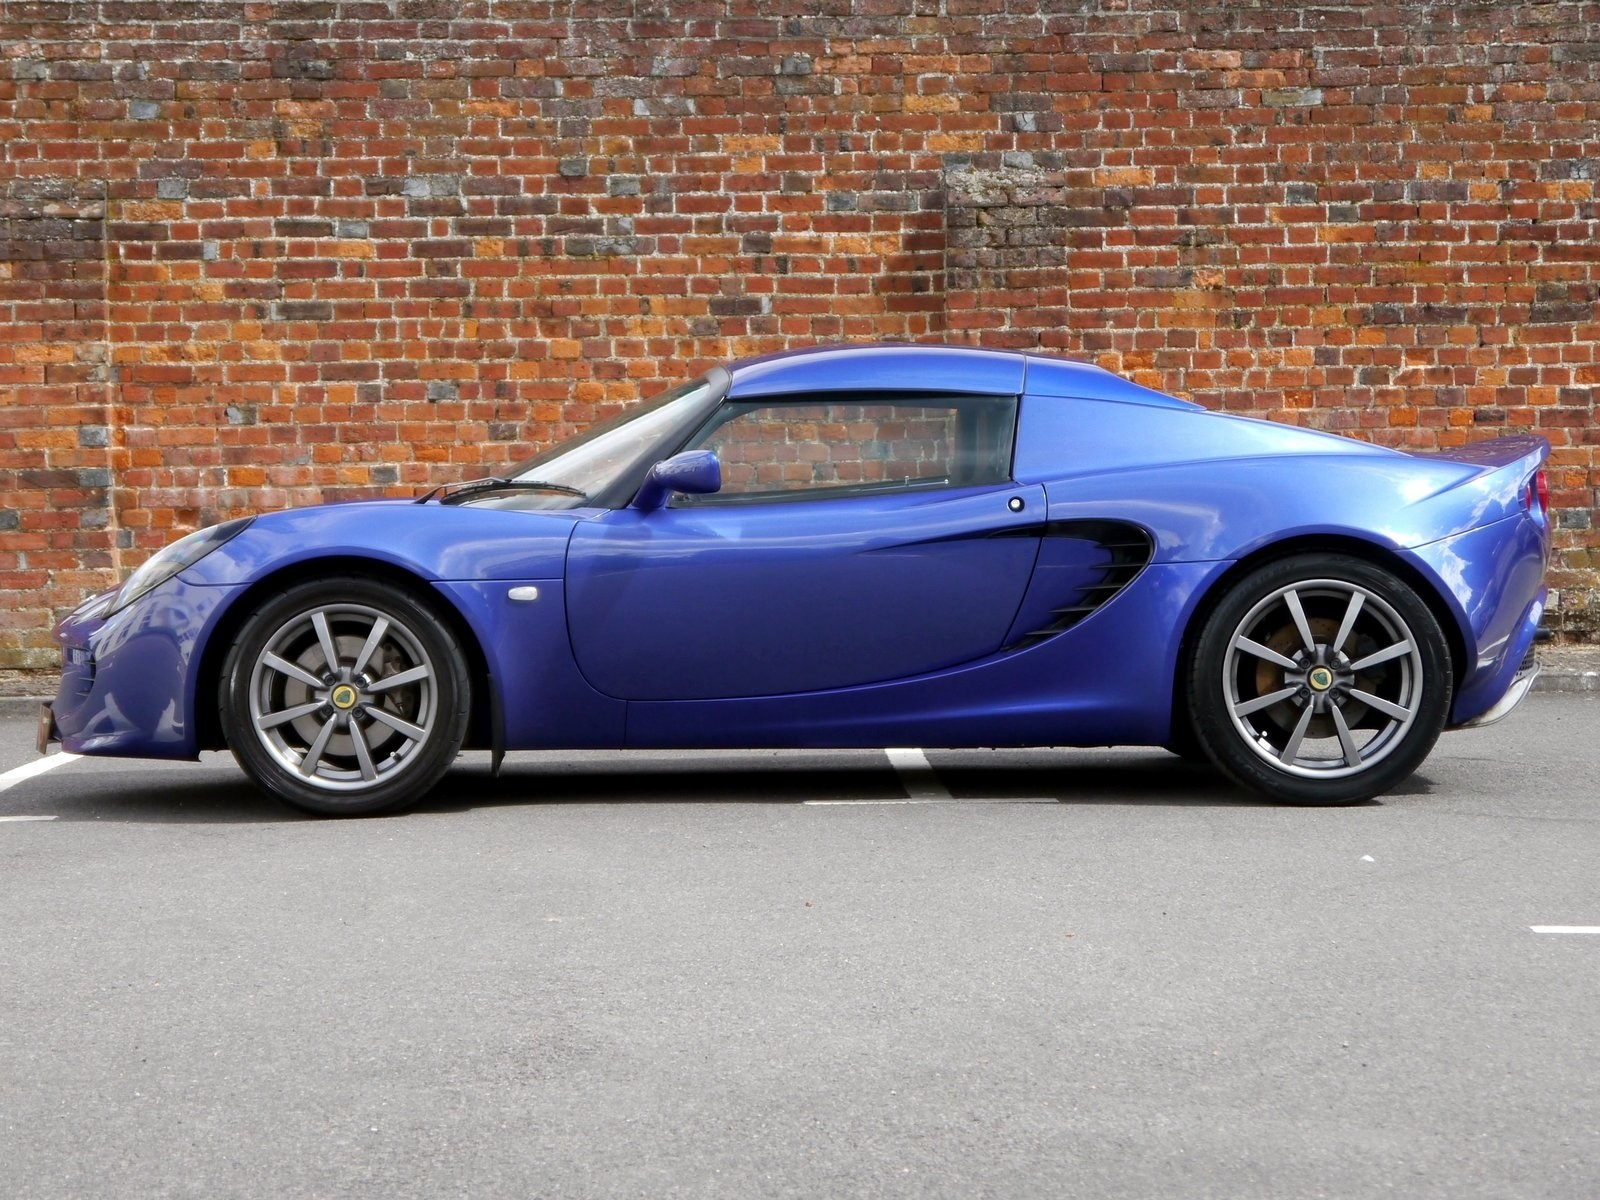 lotus elise 111r hard top 189 bhp investment opportunity for sale. Black Bedroom Furniture Sets. Home Design Ideas